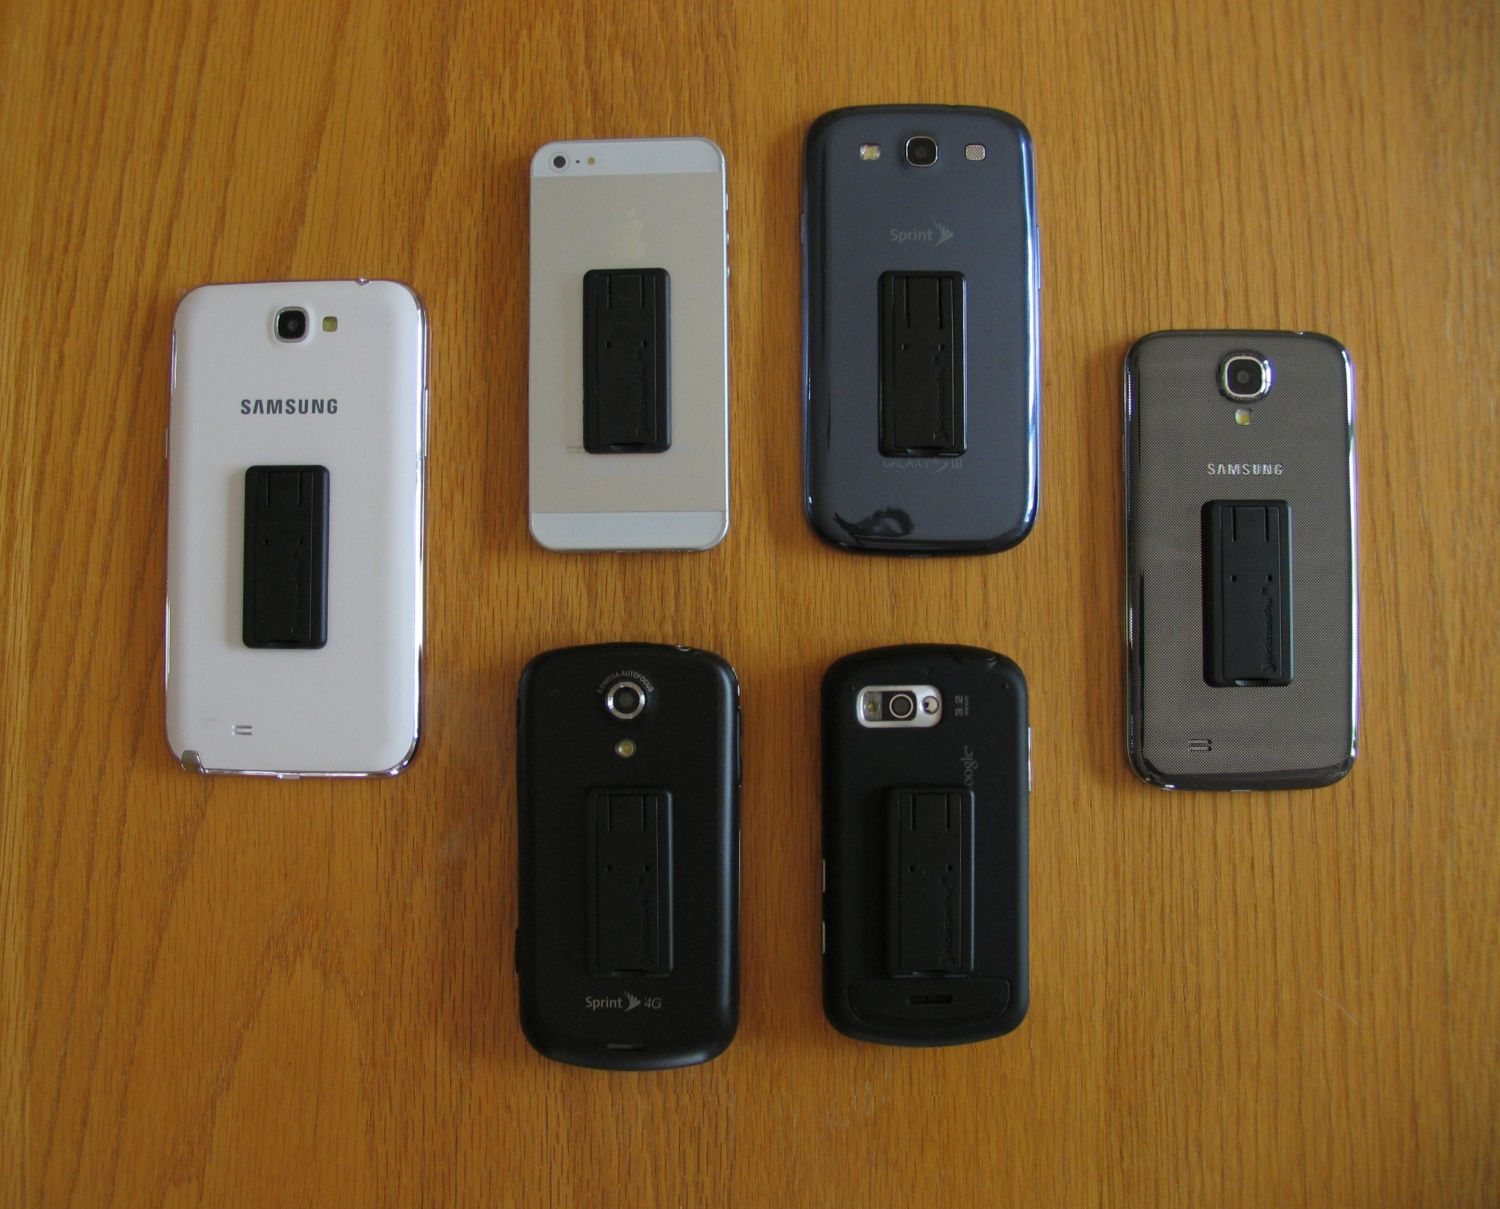 kickstand4u on various mobile phones